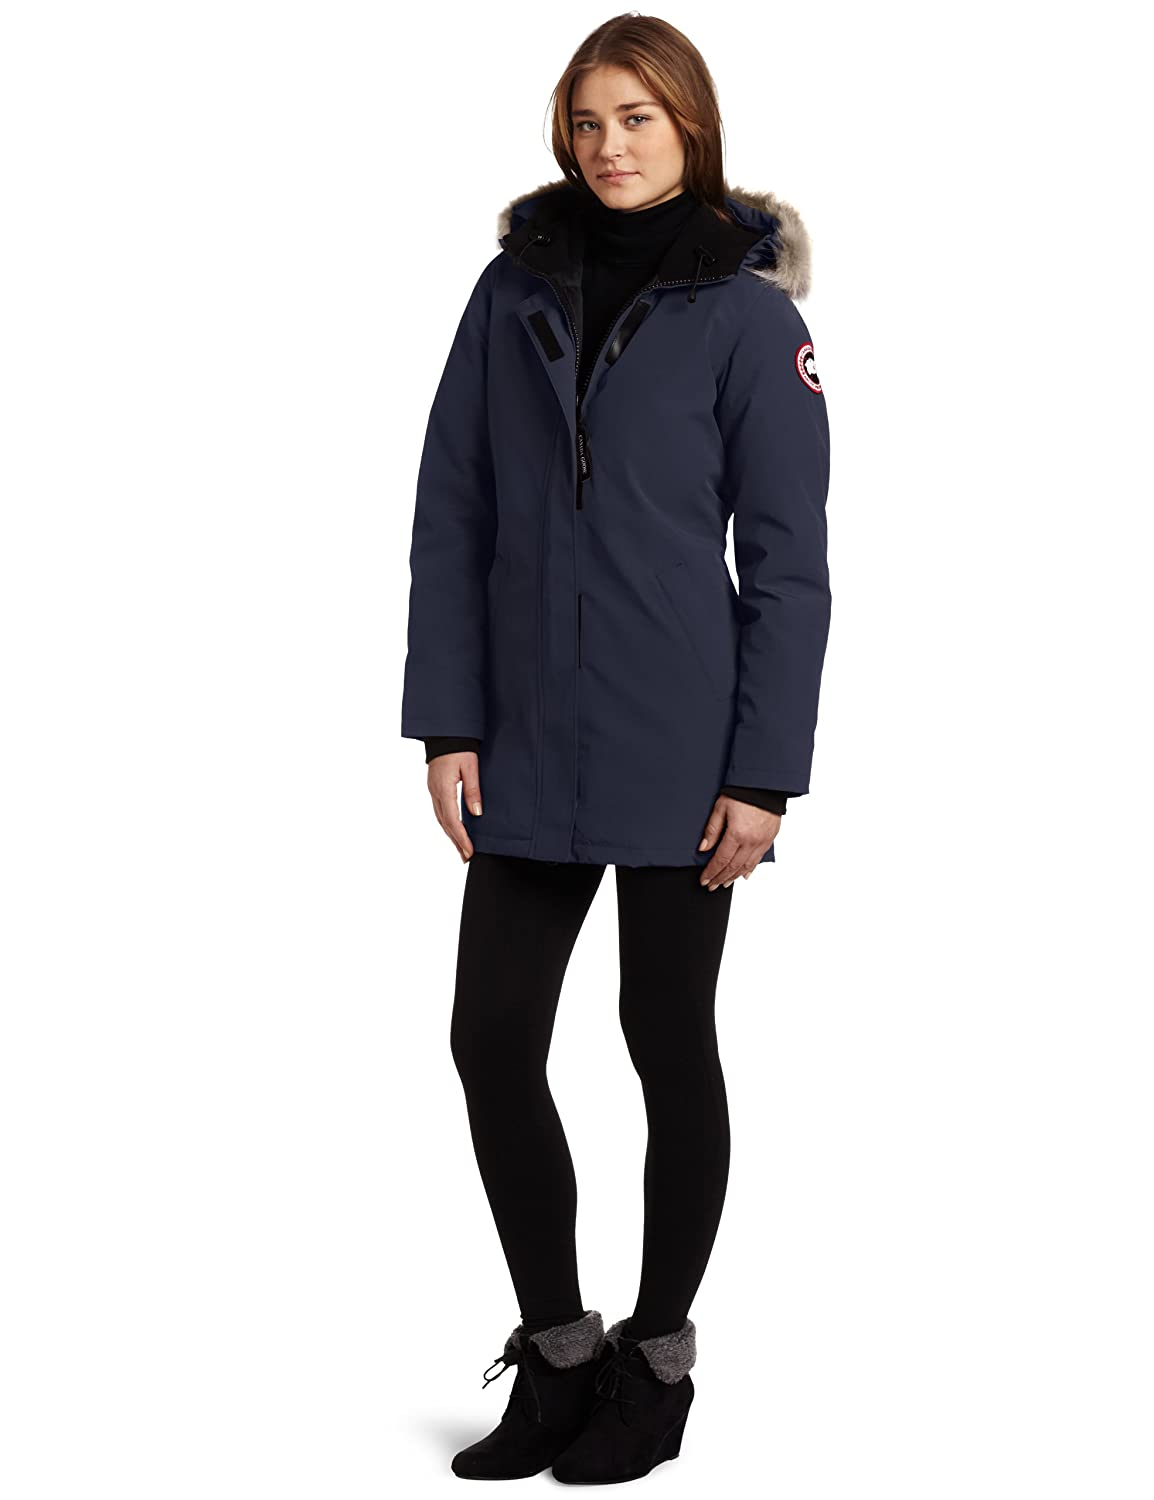 16a80f6a8006 Amazon.com  Canada Goose Women s Victoria Parka  Clothing